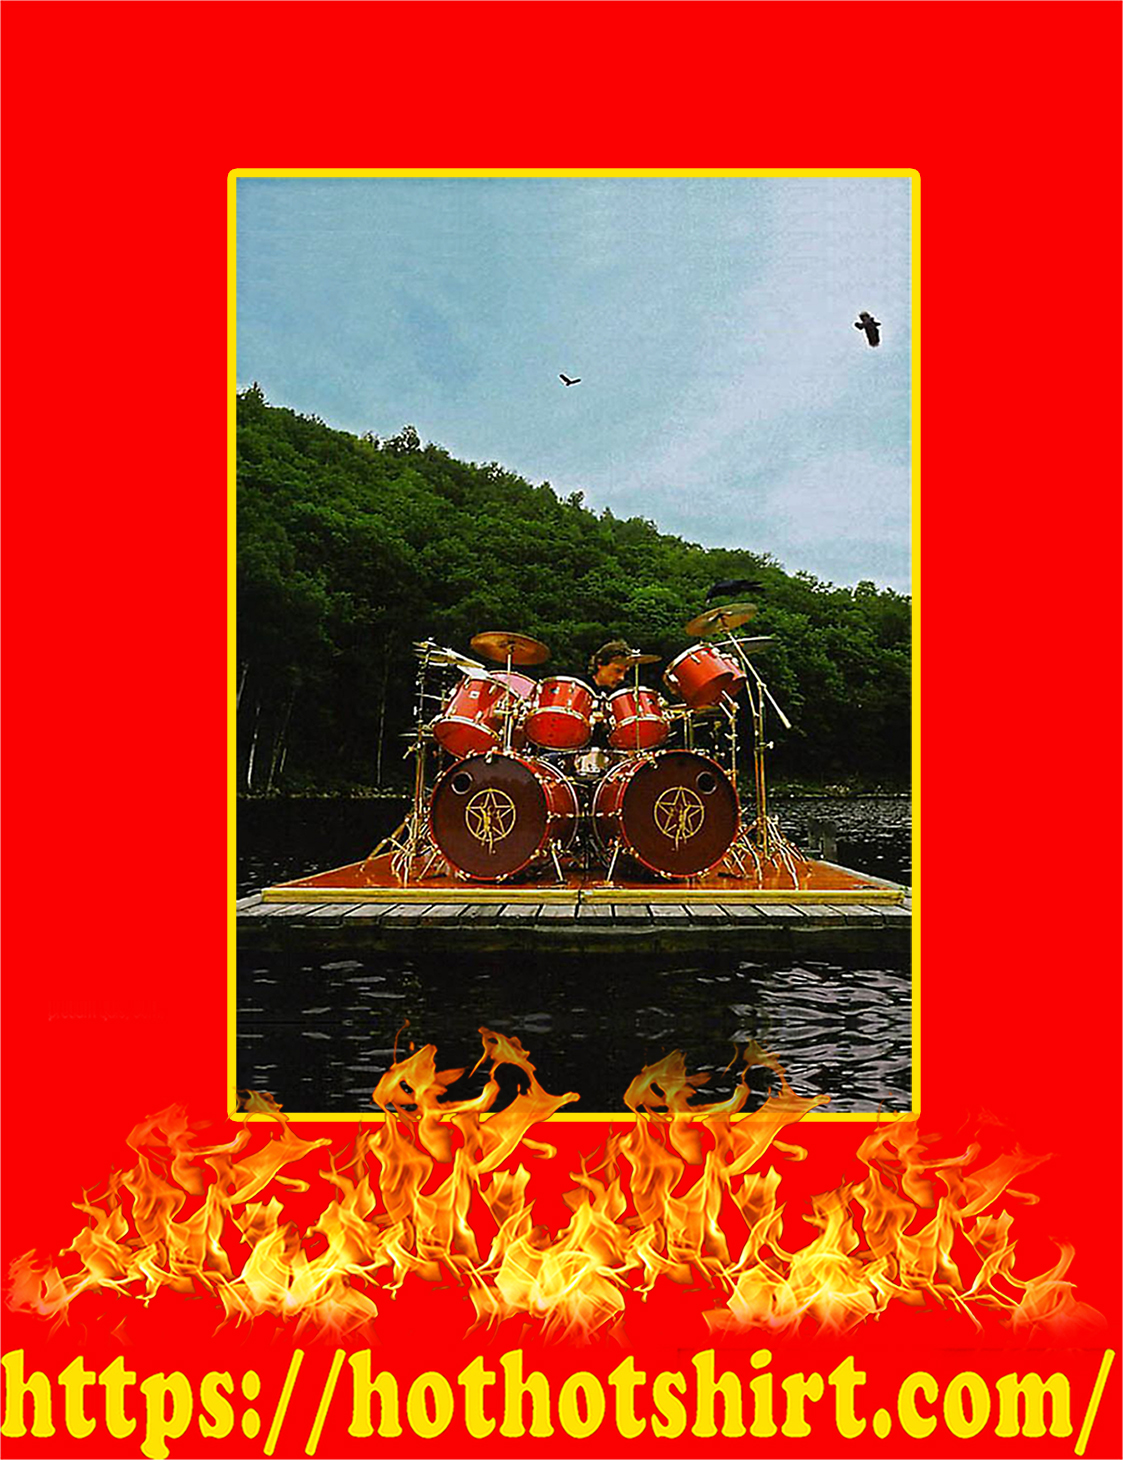 Neil Peart Playing Tama Superstar Outside On A Raft Poster - A4